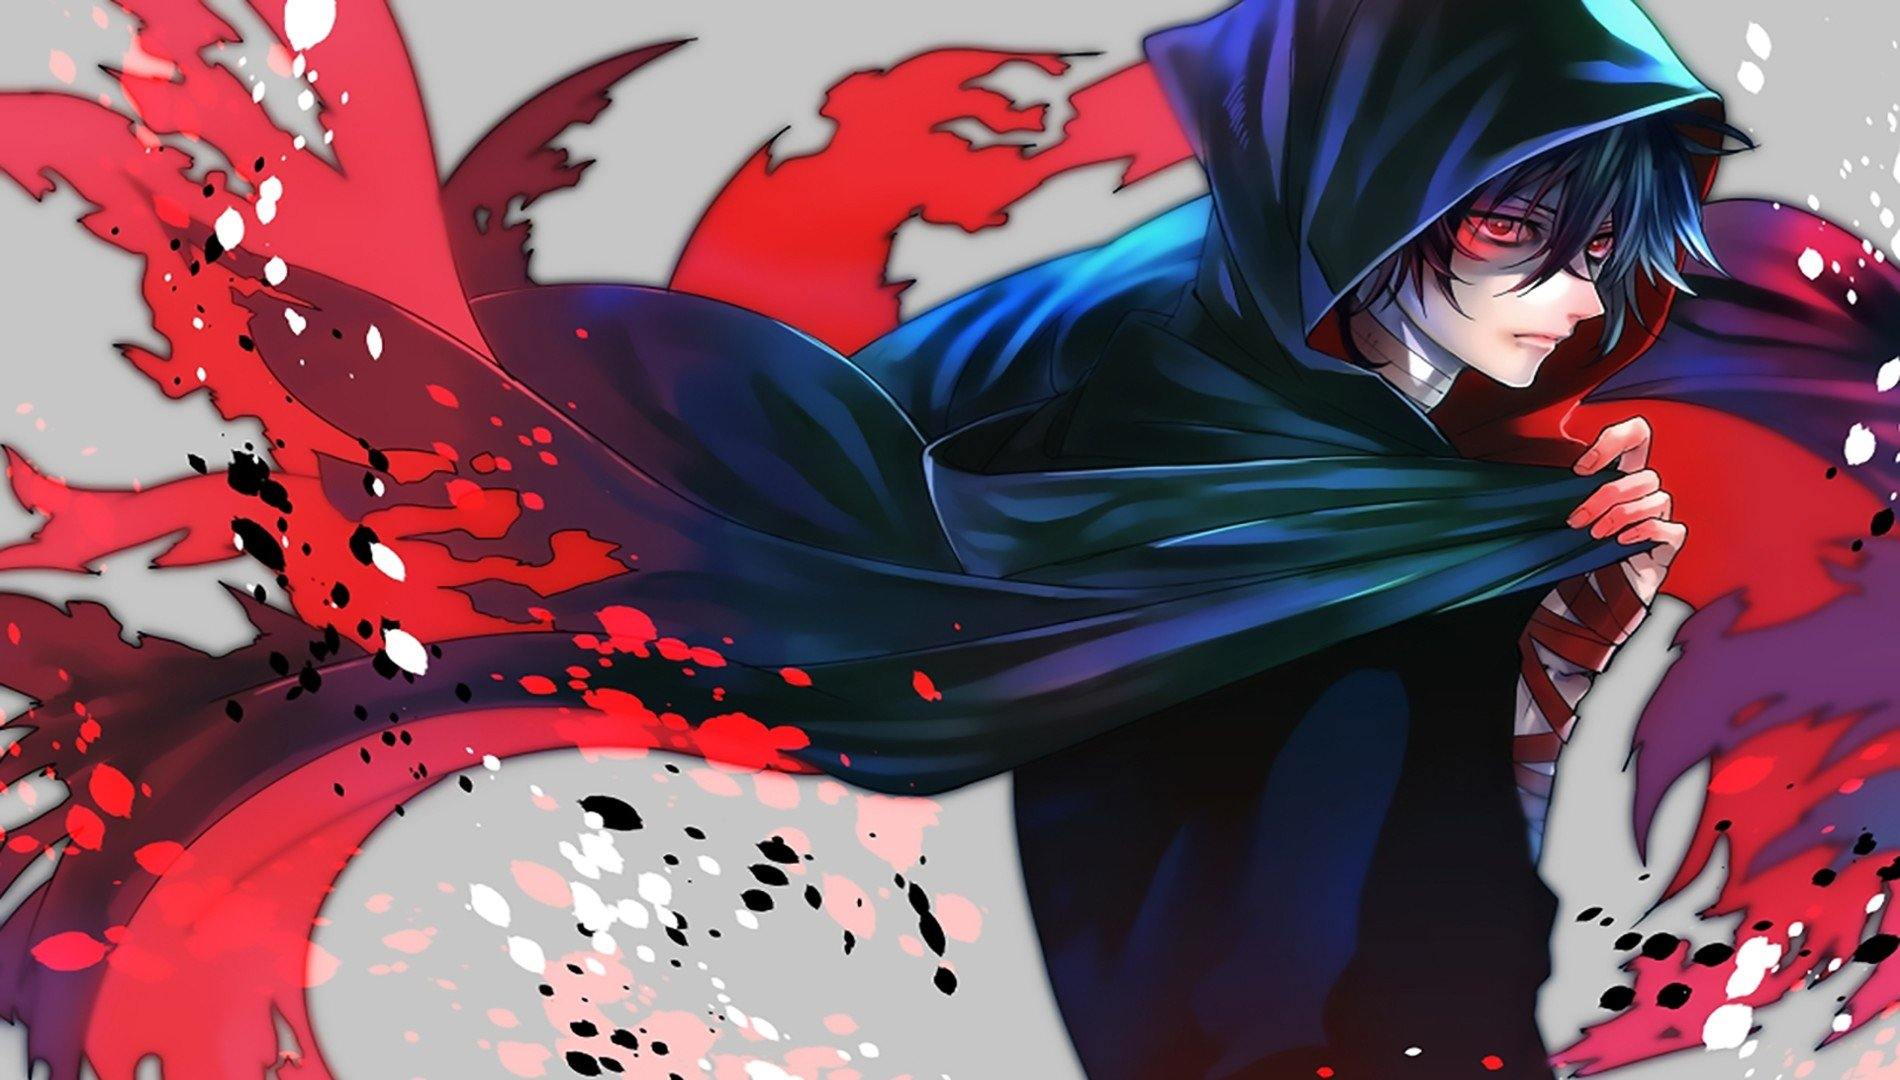 anime boy with red eyes blue hair wallpaper 1900x1080